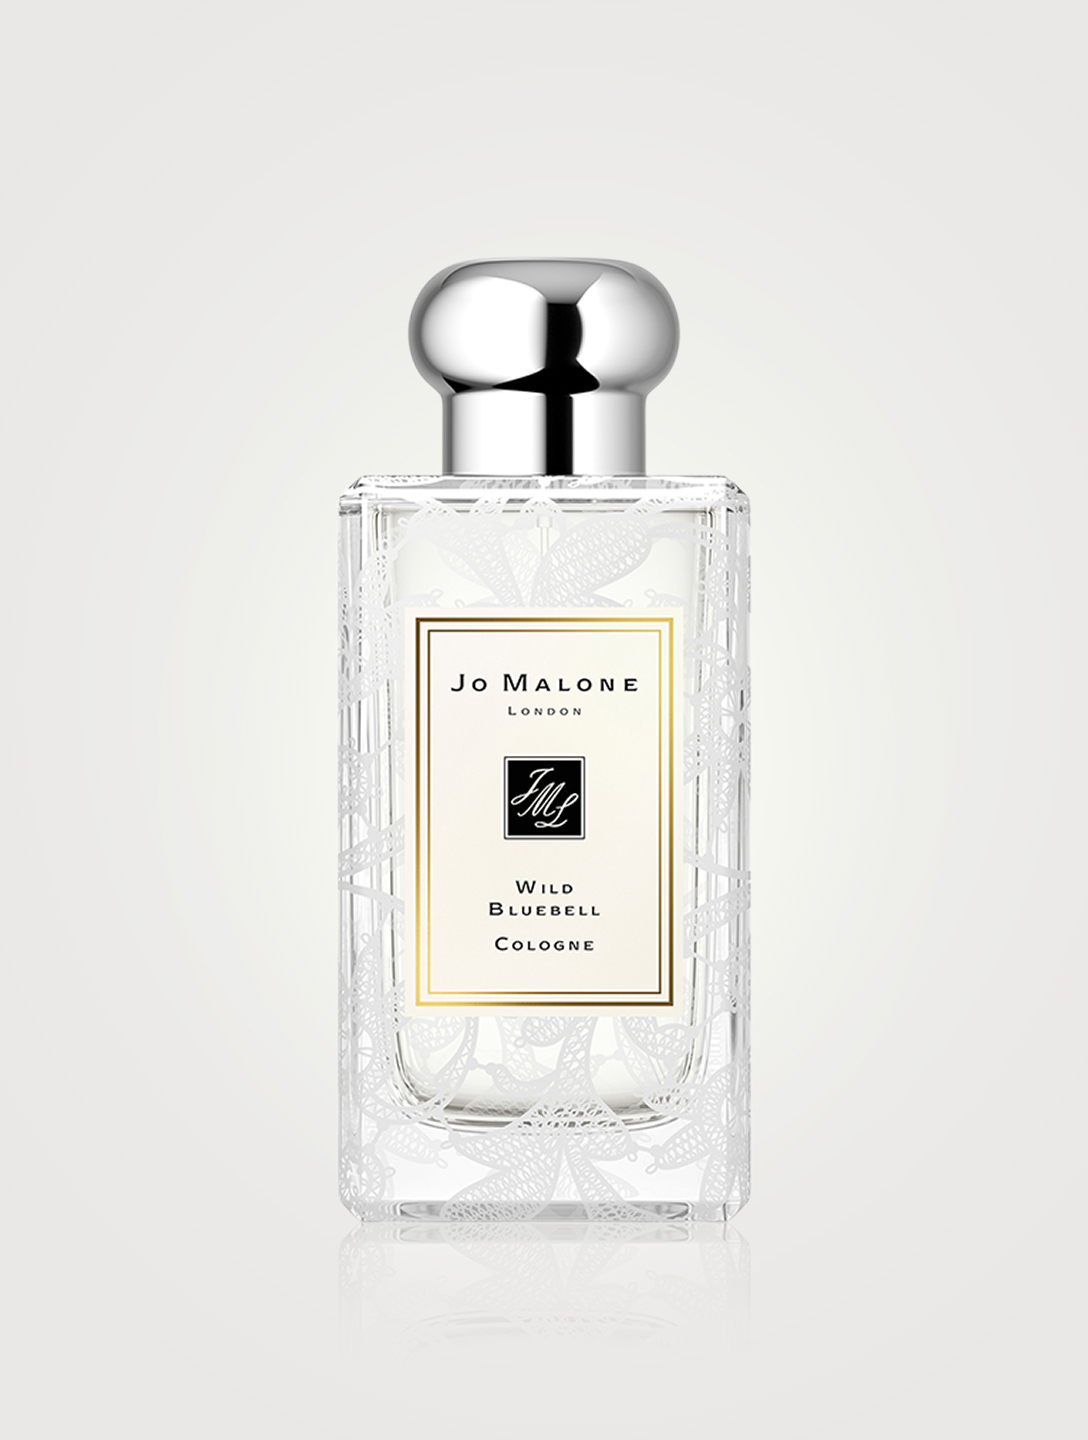 JO MALONE LONDON Wild Bluebell Cologne with Daisy Leaf Lace Design Beauty